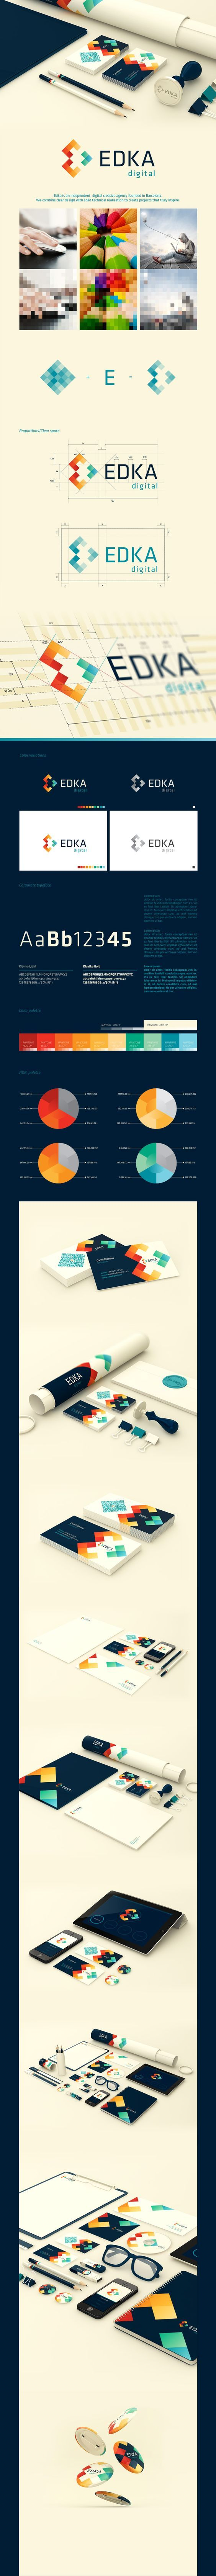 EDKA Digital Branding on Behance | Fivestar Branding – Design and Branding Agency & Inspiration Gallery | Professional Logo and Website Design